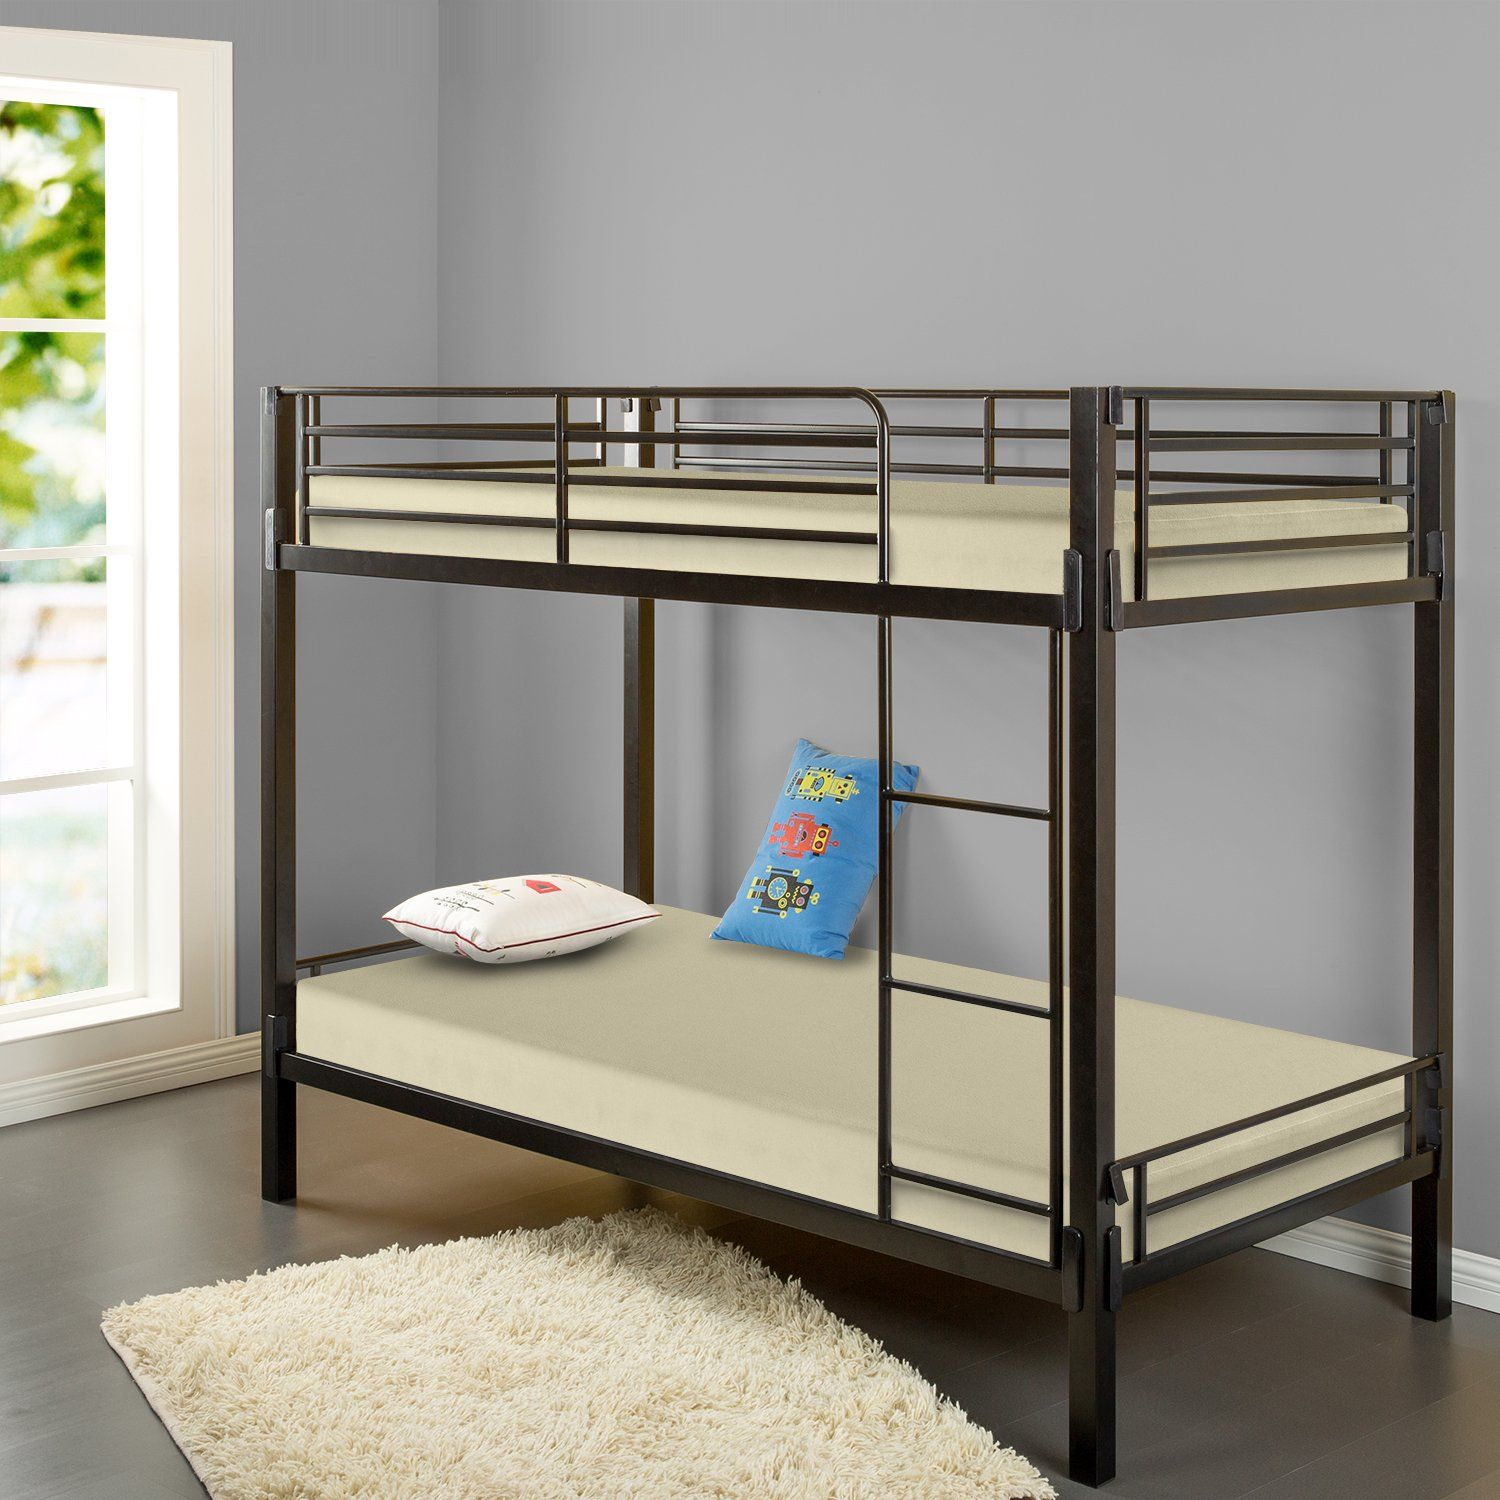 sleep master memory foam 5 inch bunk bed trundle bed day bed